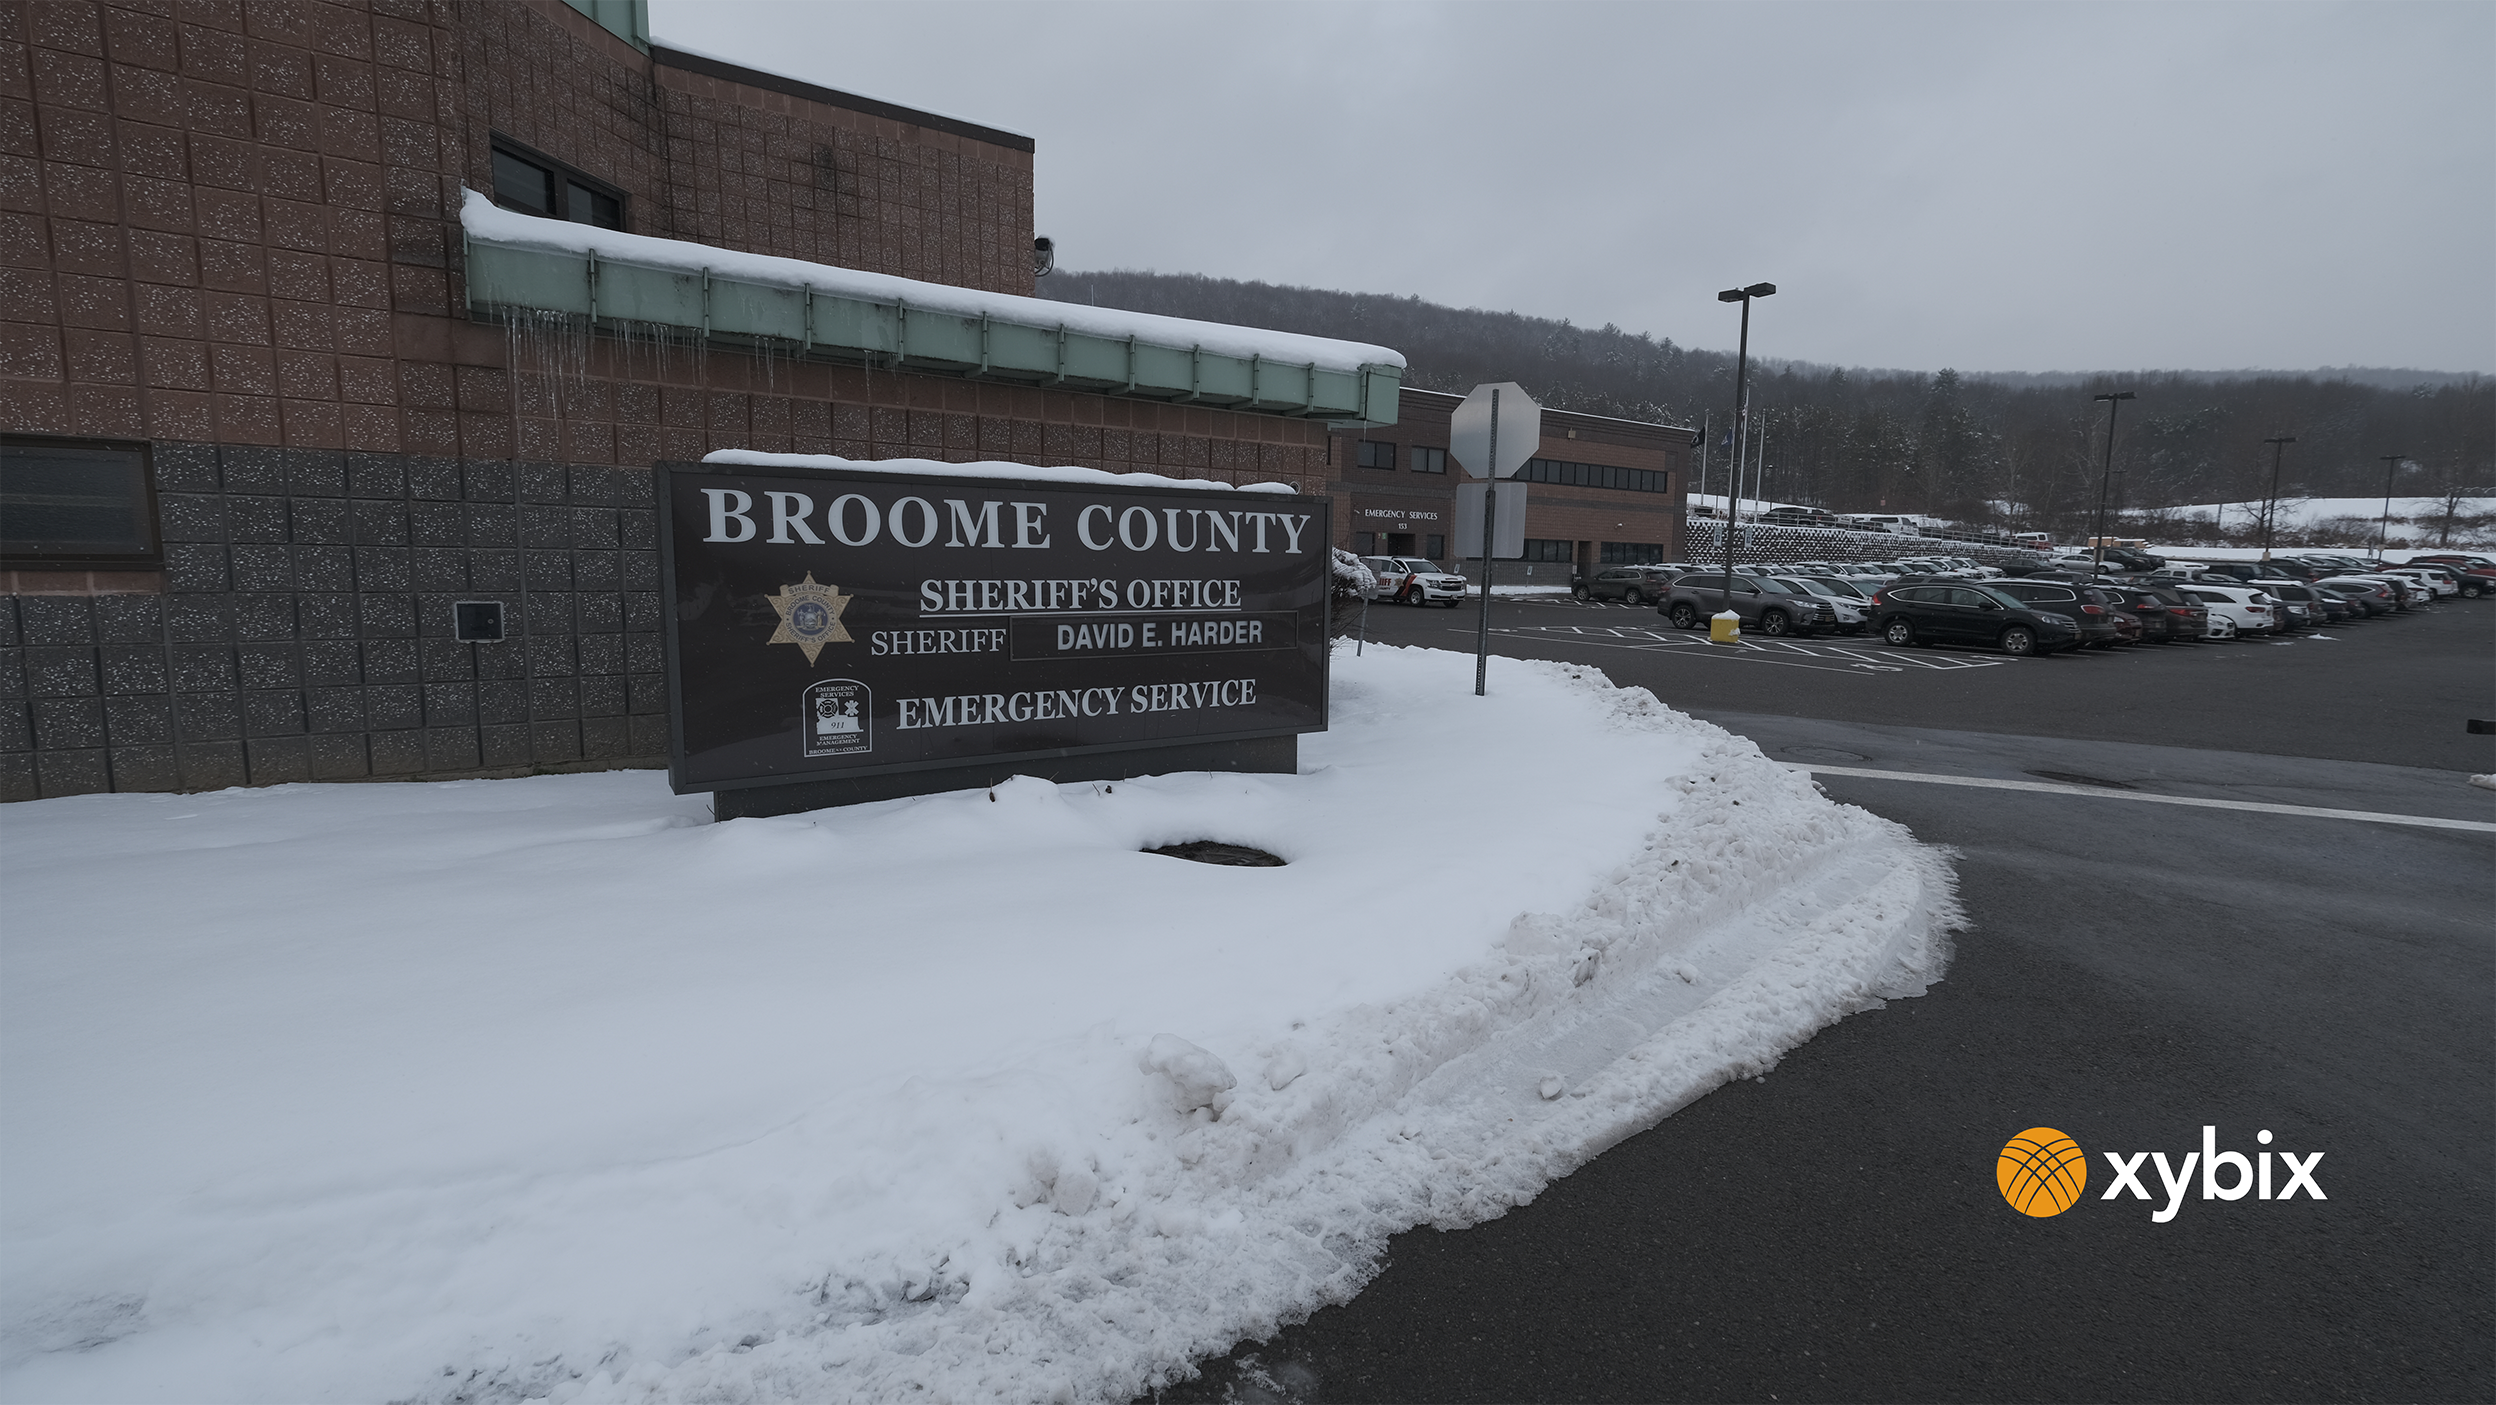 Broome County Office of Emergency Services Image